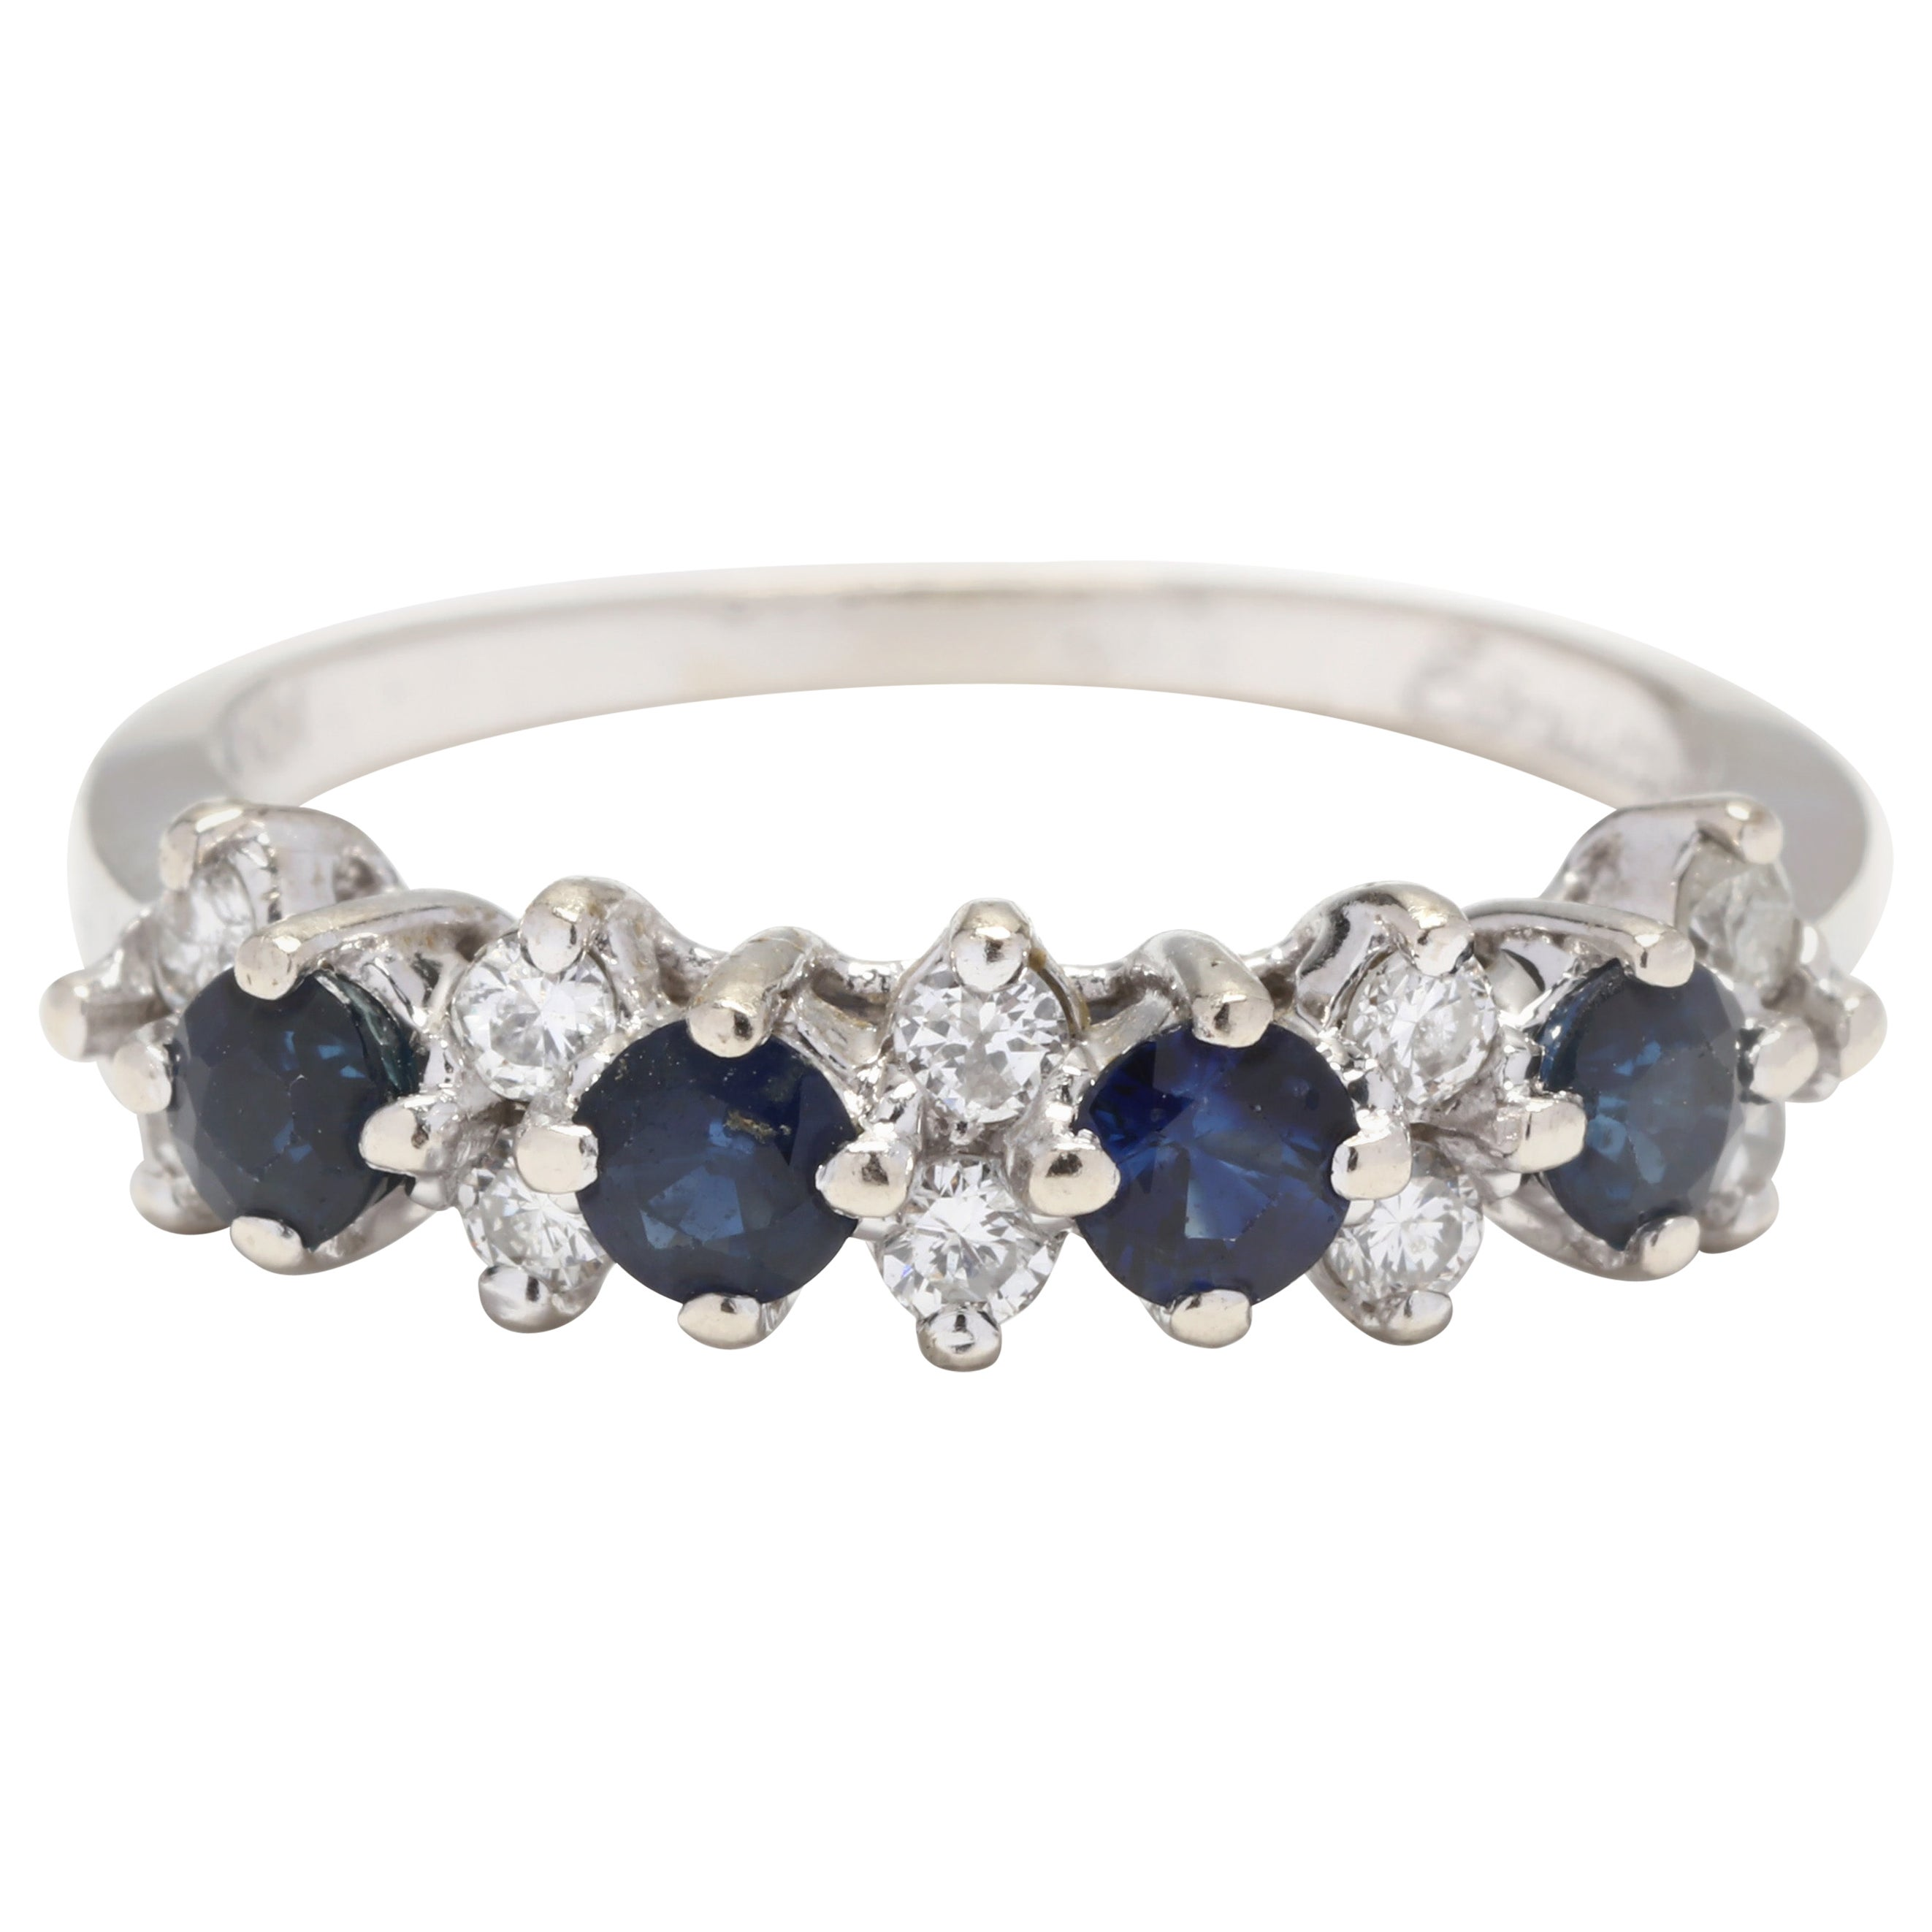 14 Karat White Gold, Sapphire and Diamond Stackable Band Ring